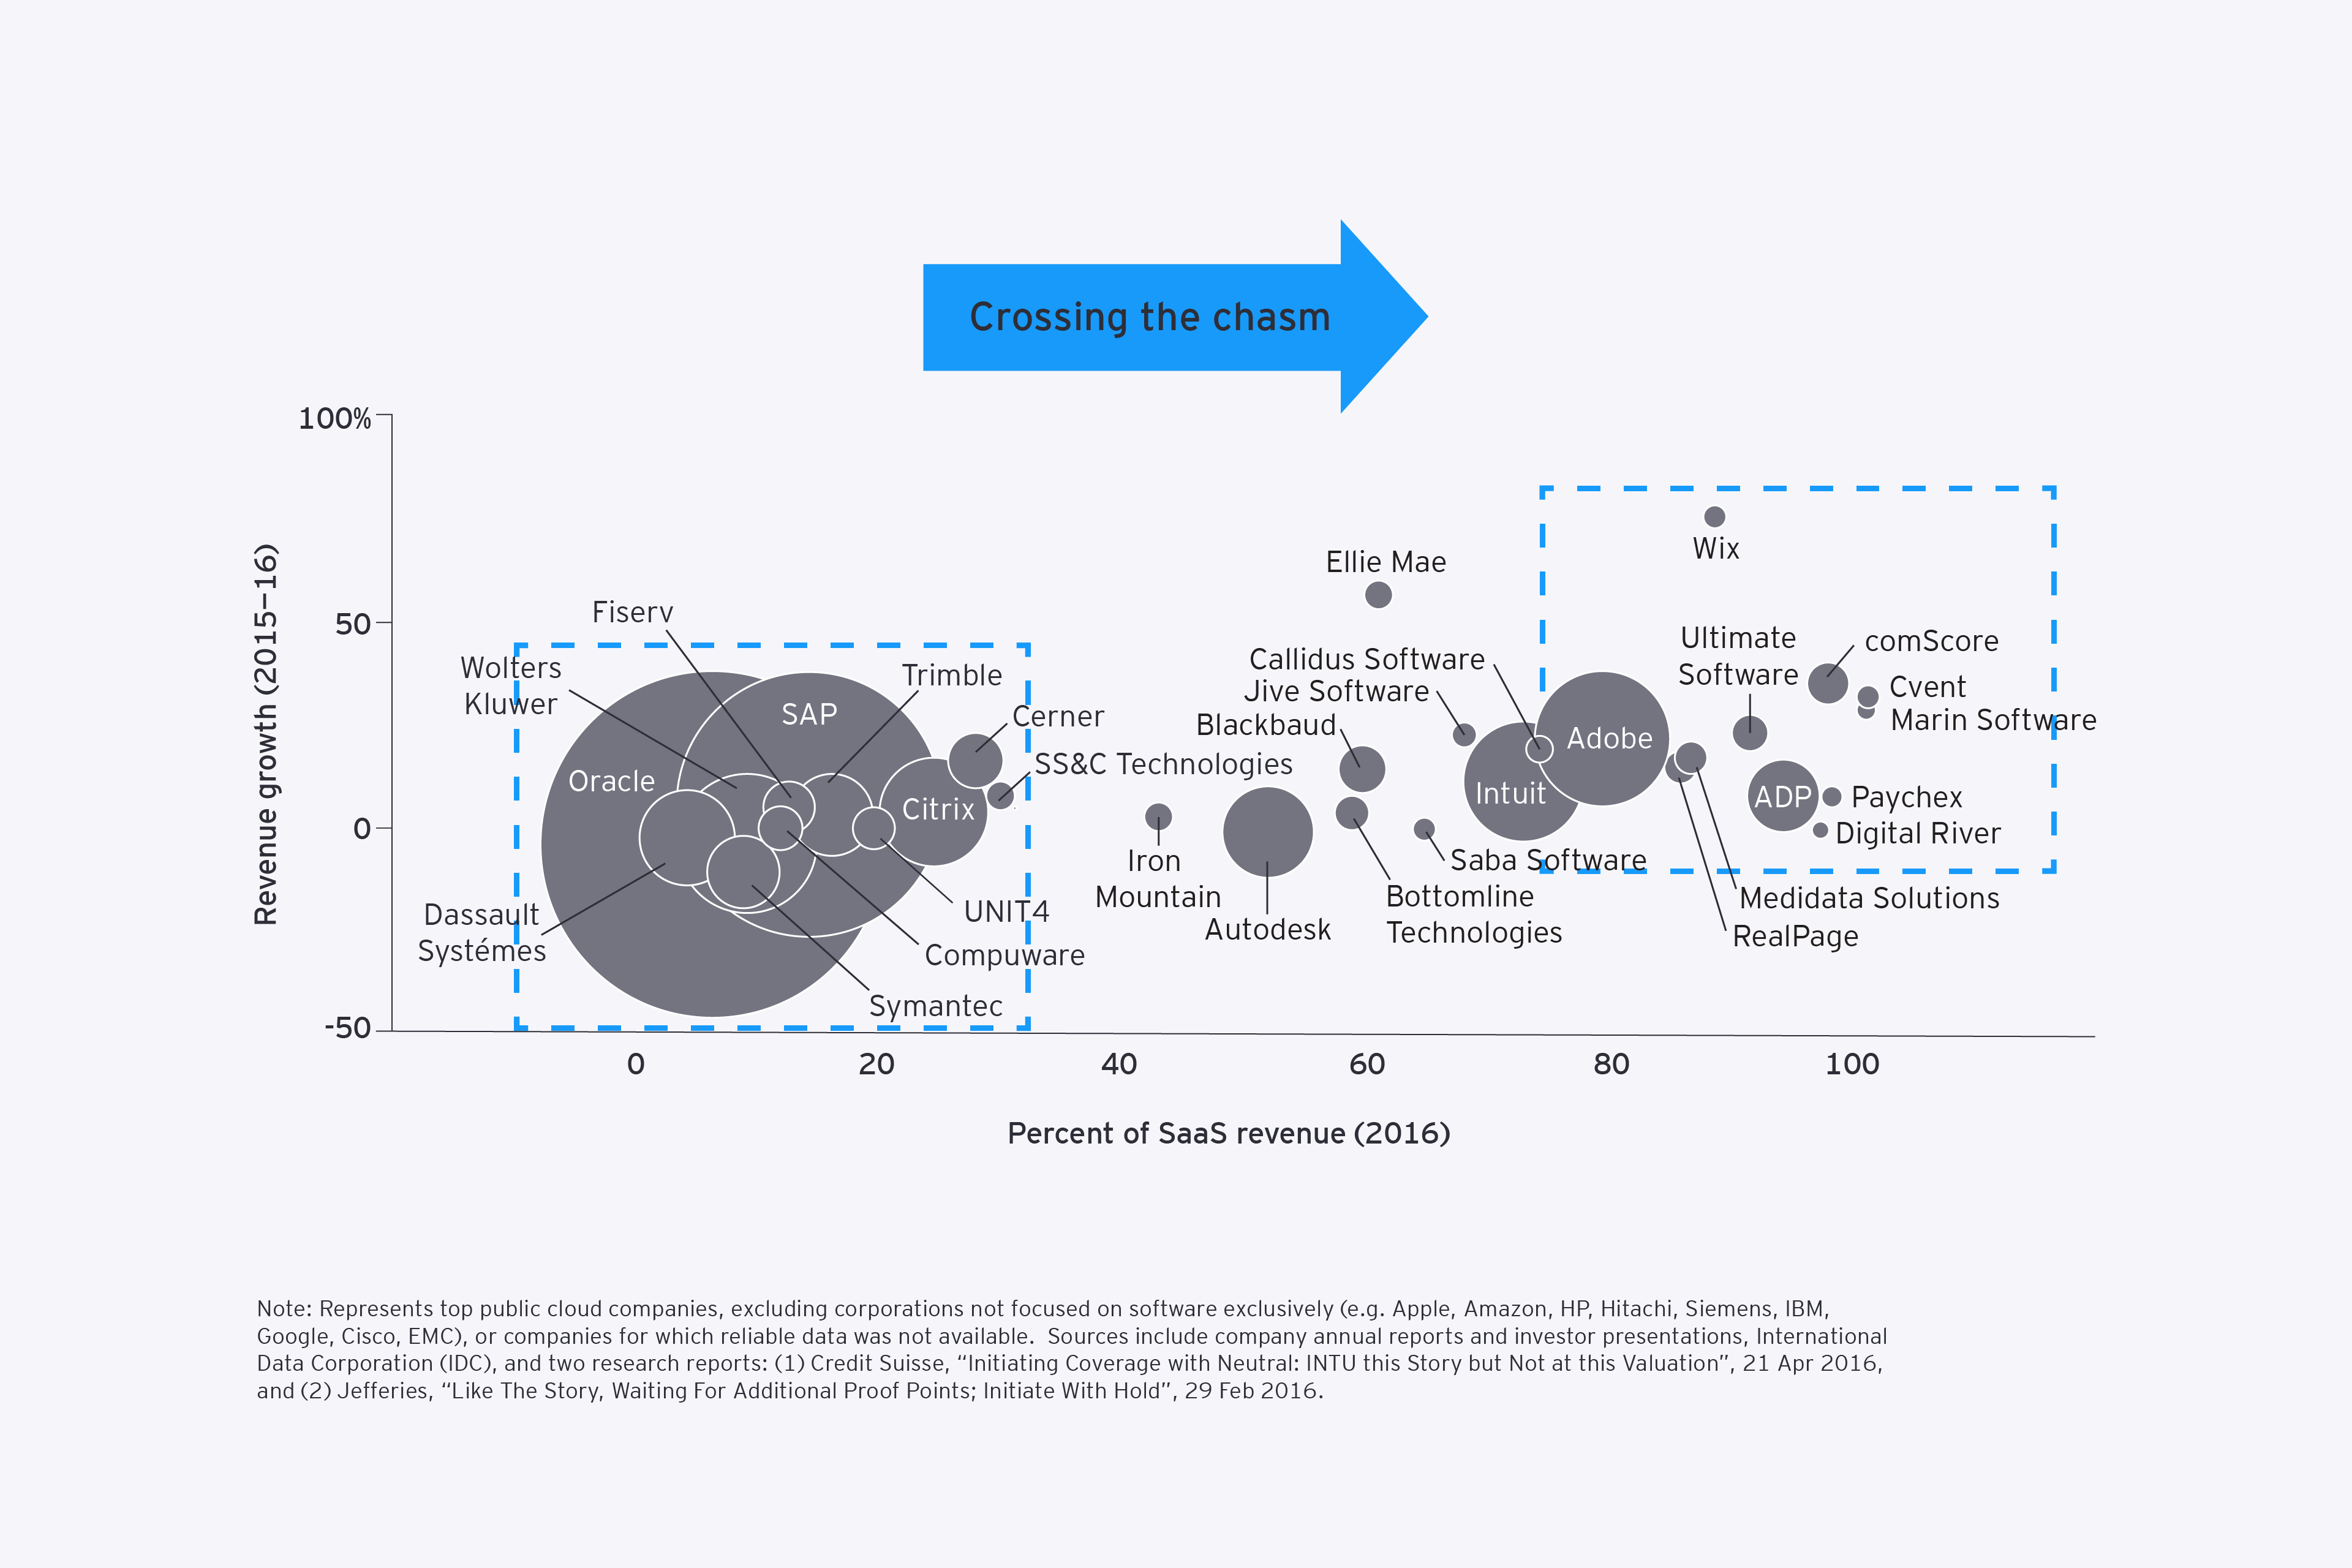 Consolidation opportunities